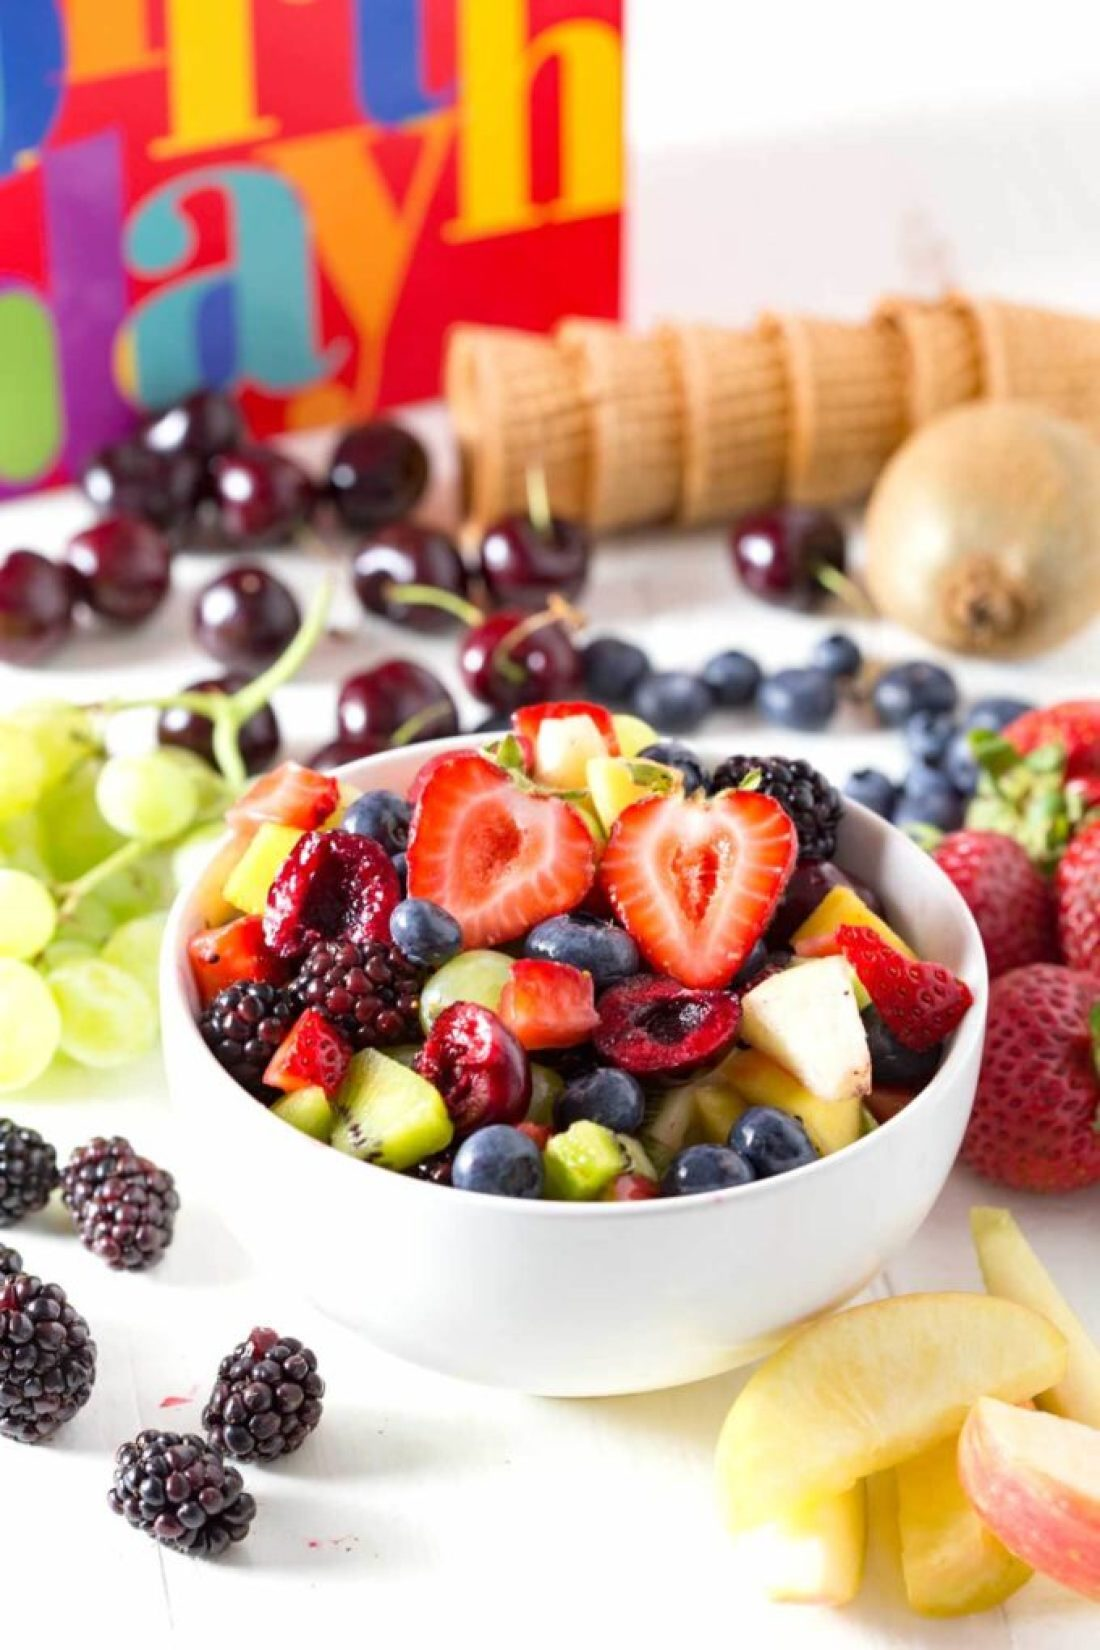 Fruit cut up for chocolate dipped fruit cones